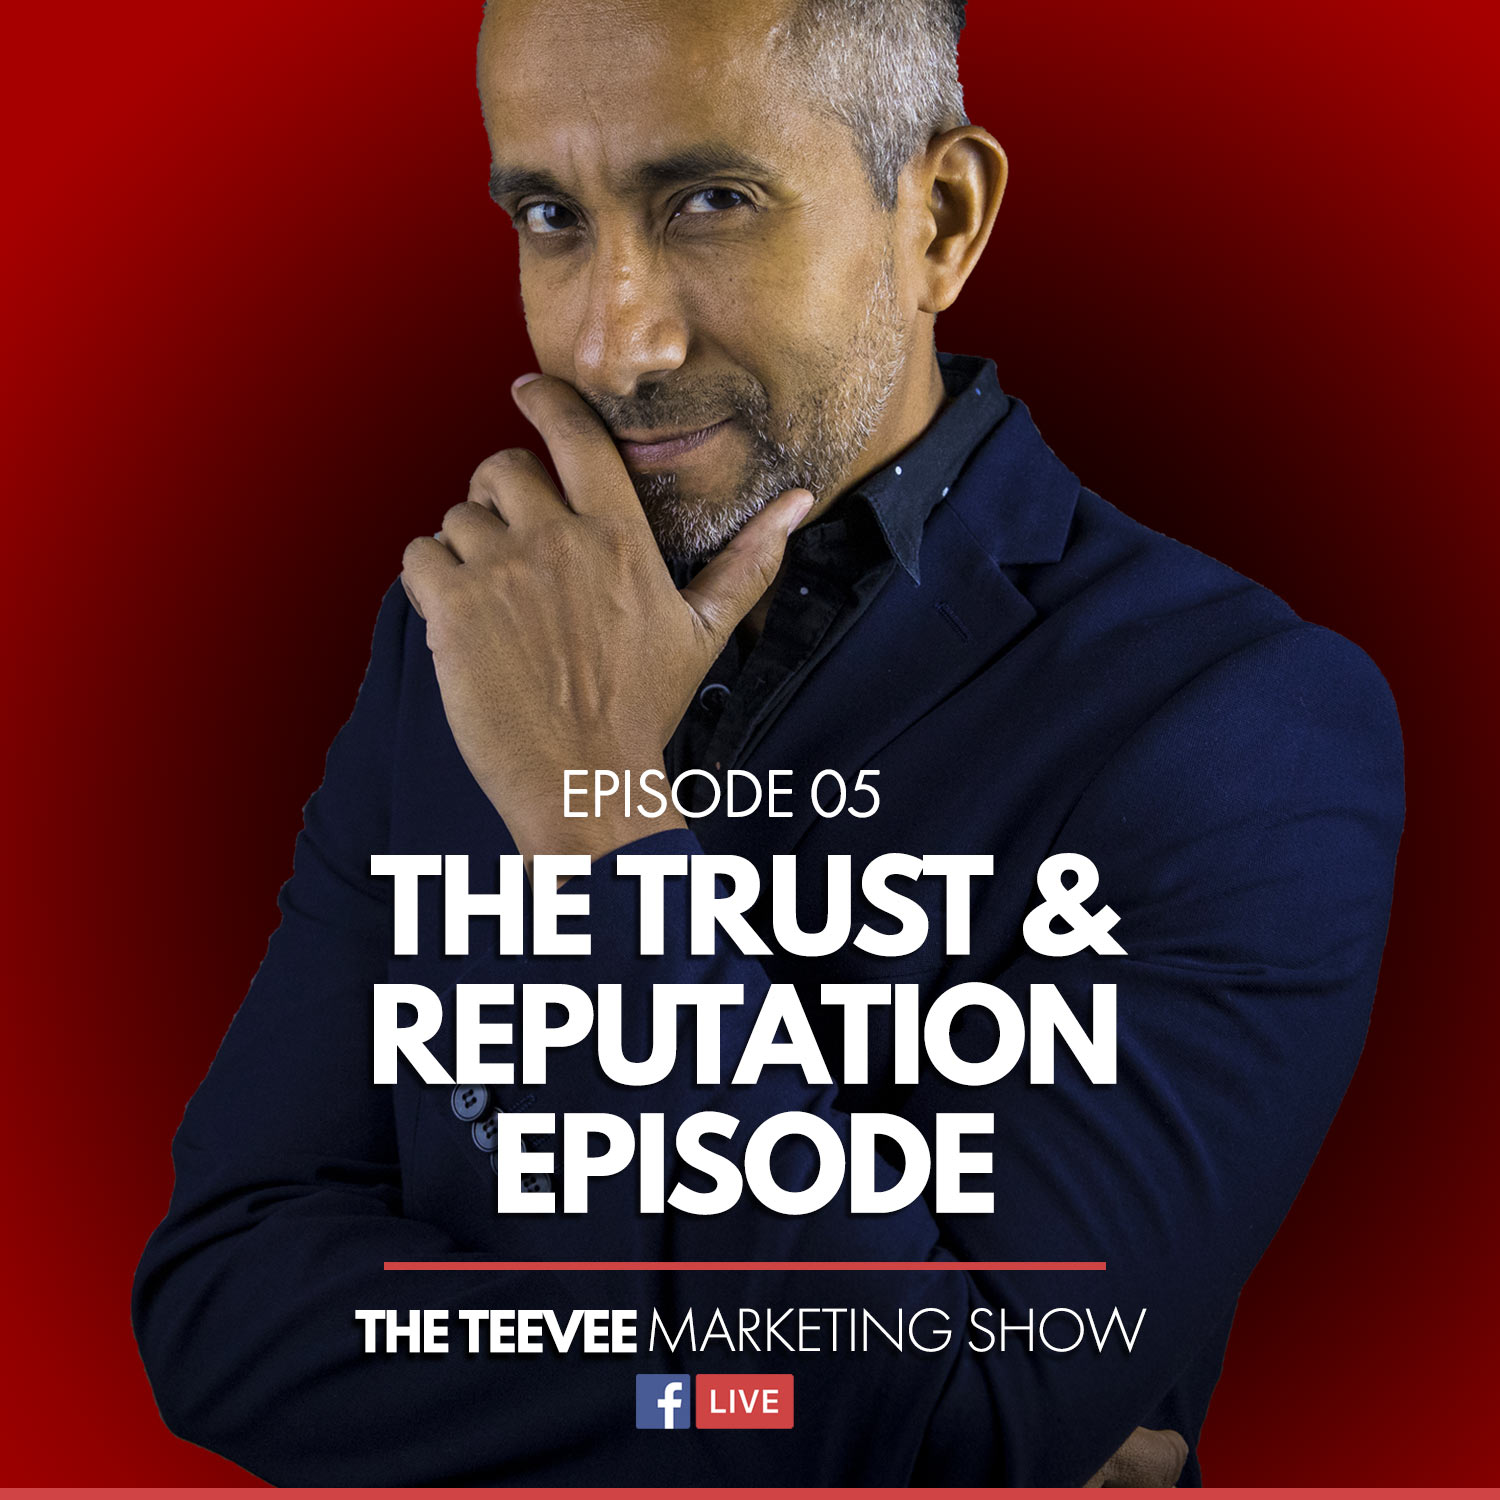 EP005: The Trust & Reputation Episode